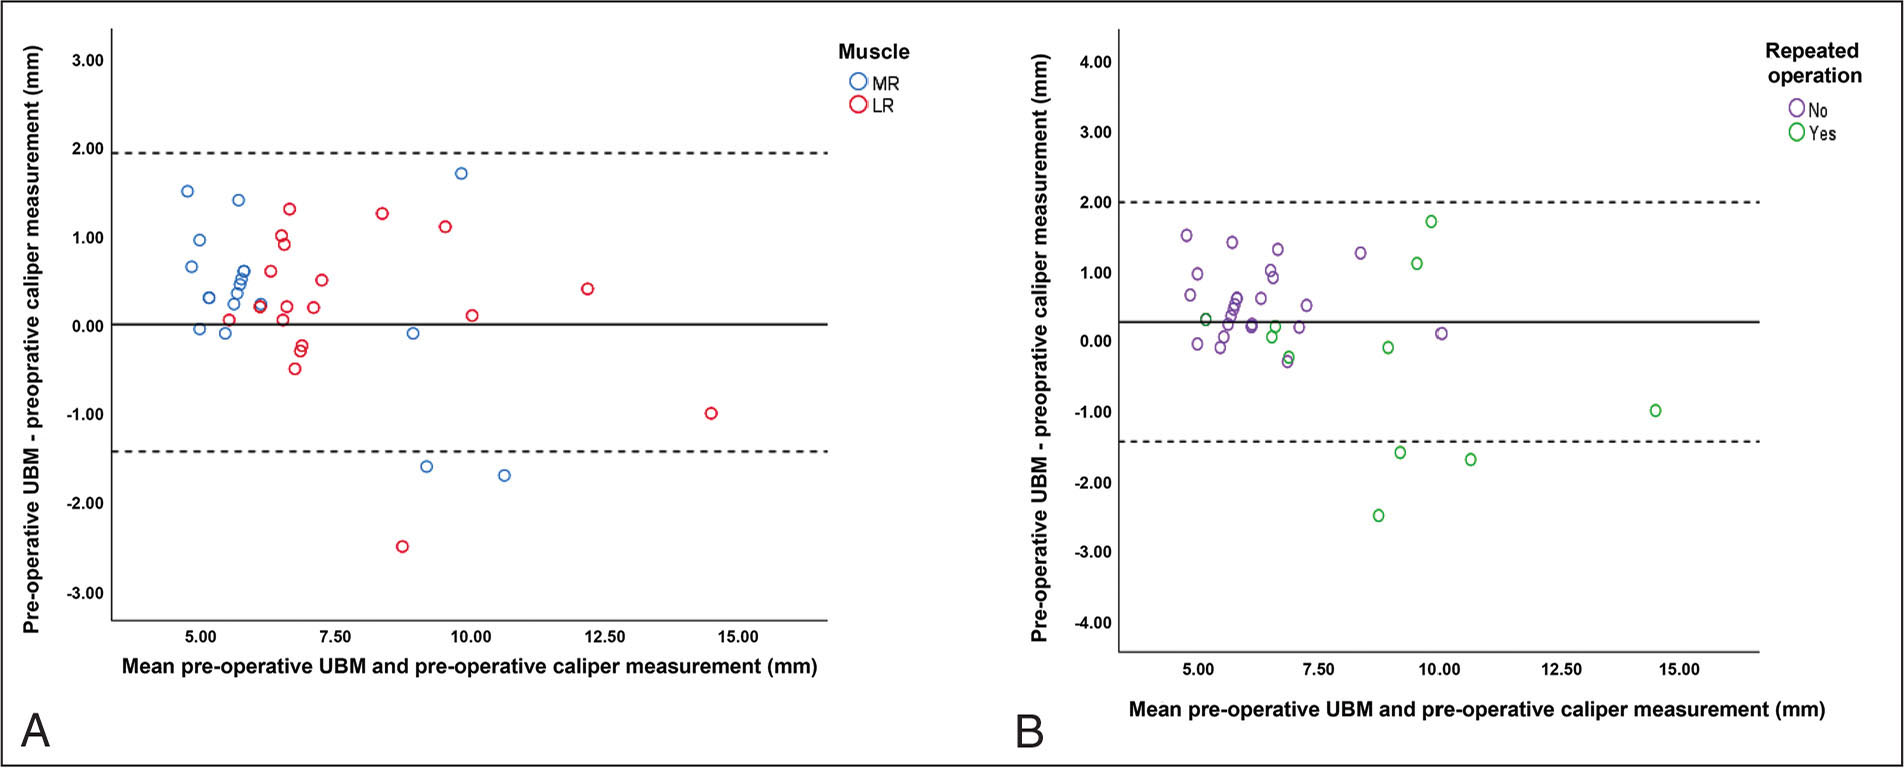 Bland–Altman plots showing the difference between preoperative ultrasound biomicroscopy (UBM) and preoperative caliper measurements plotted against the average of the two measurements. The dashed lines represent the 95% confidence interval (CI). (A) Color sub-classification according to medial rectus and lateral rectus muscles and (B) color subclassification according to the naive muscle group versus the reoperation group. The three dots outside the CI represent previously operated muscles. MR = medial rectus; LR = lateral rectus